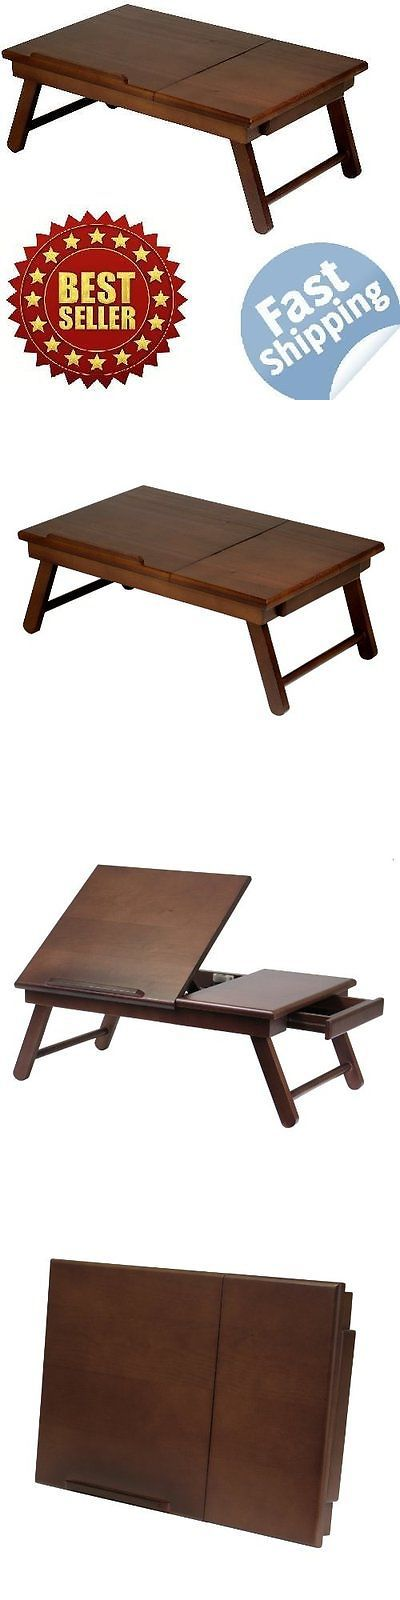 Trays 45505: Breakfast In Bed Table Portable Laptop Desk Computer Serving Tray Workstation -> BUY IT NOW ONLY: $33.04 on eBay!